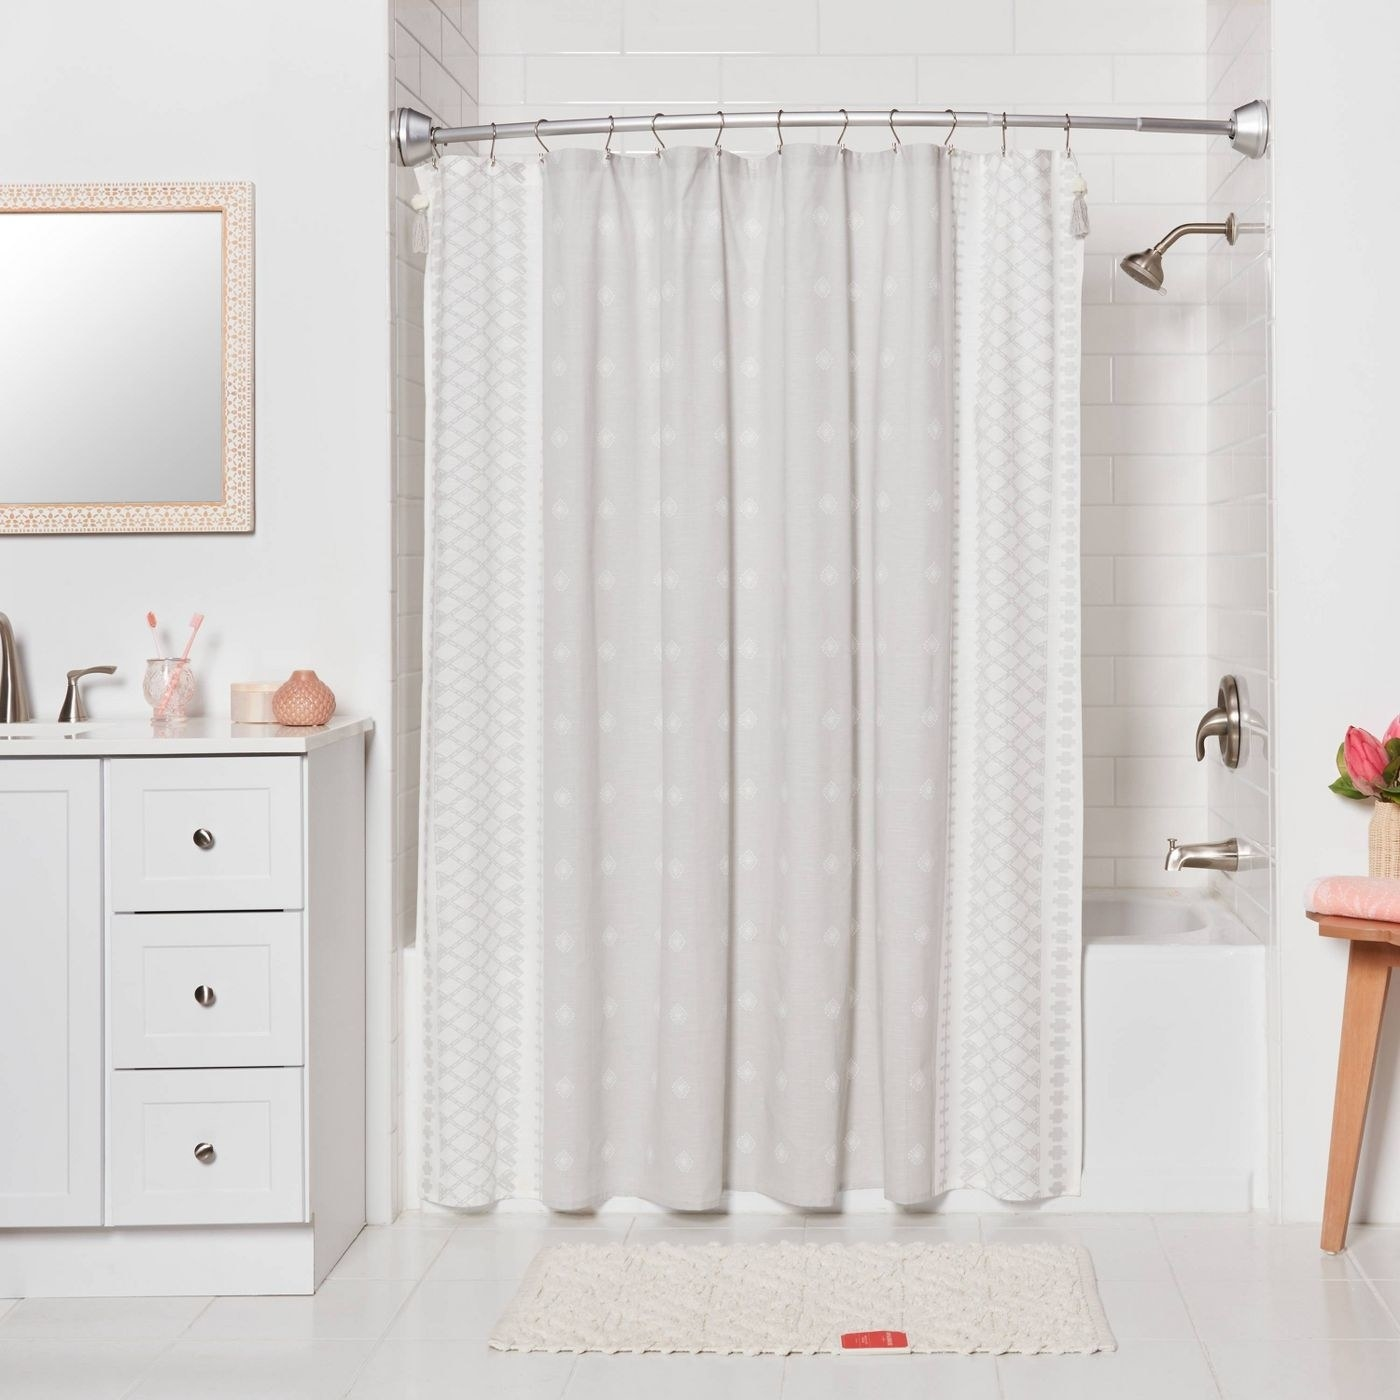 The rod installed in a bathroom with a white shower curtain on it